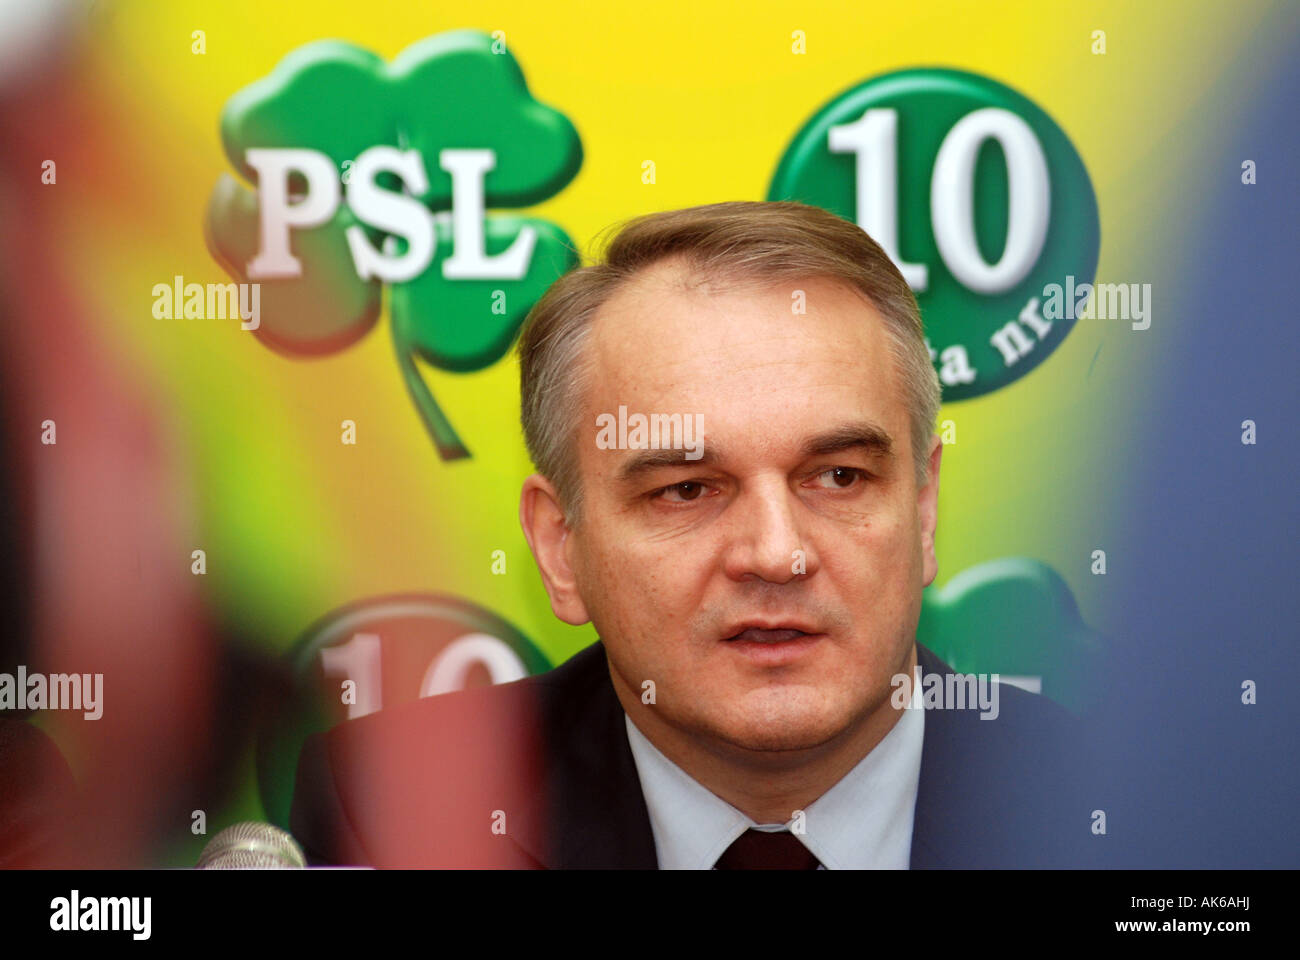 Waldemar Pawlak - former Polish Prime Minister - from Polskie Stronnictwo Ludowe party (Peasant Party) - Stock Image